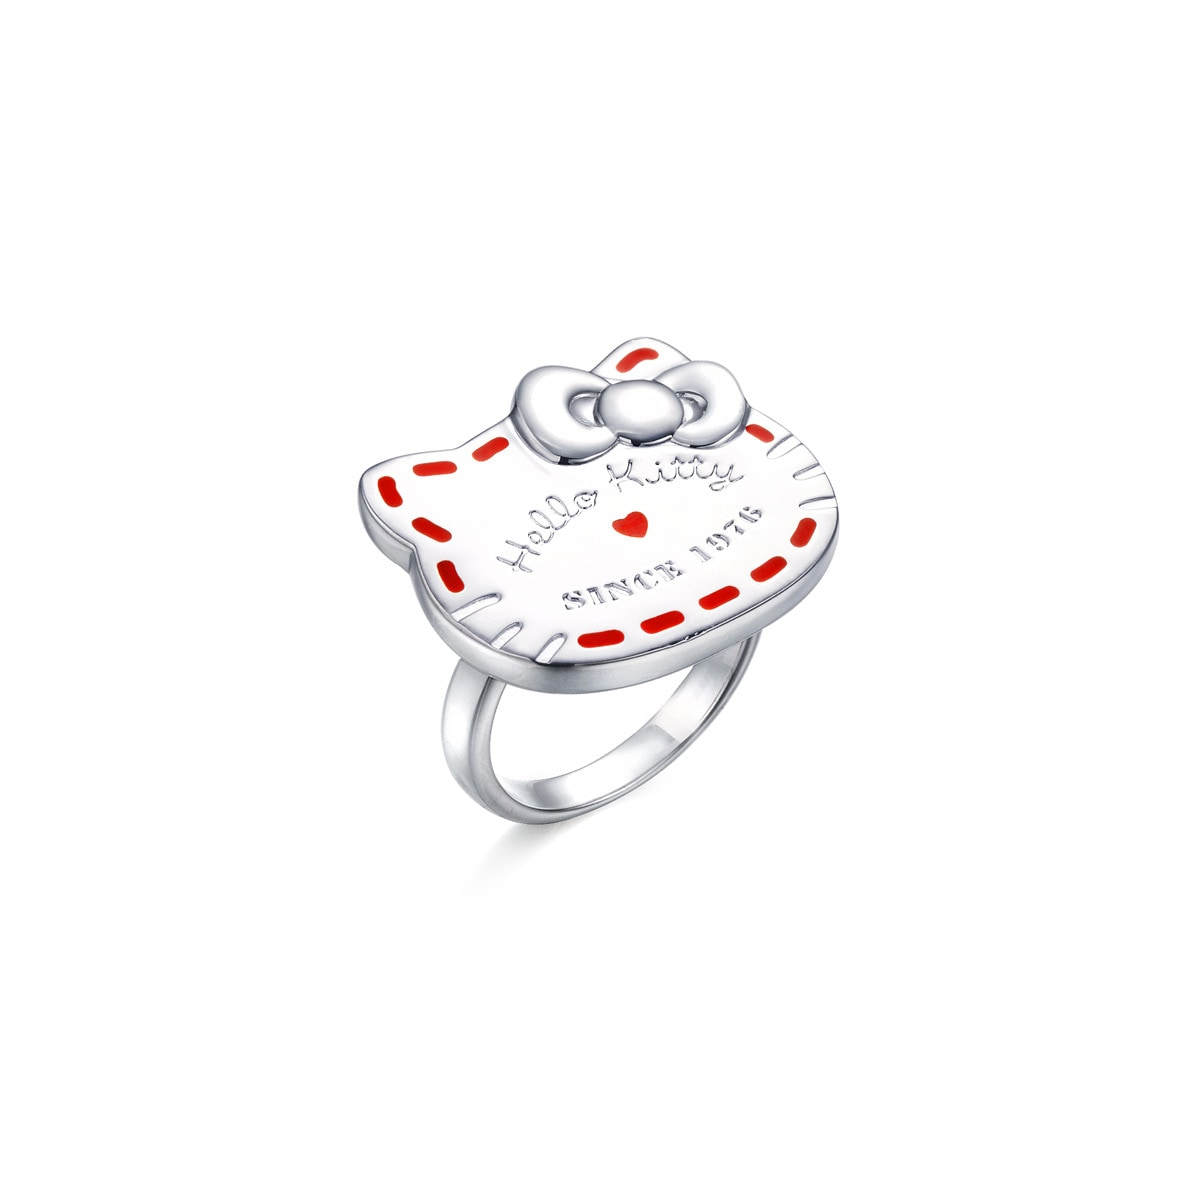 b3a7d62cf Sanrio 'Hello Kitty' Sterling Silver Ring. $800. Share. Previous. Loading  zoom